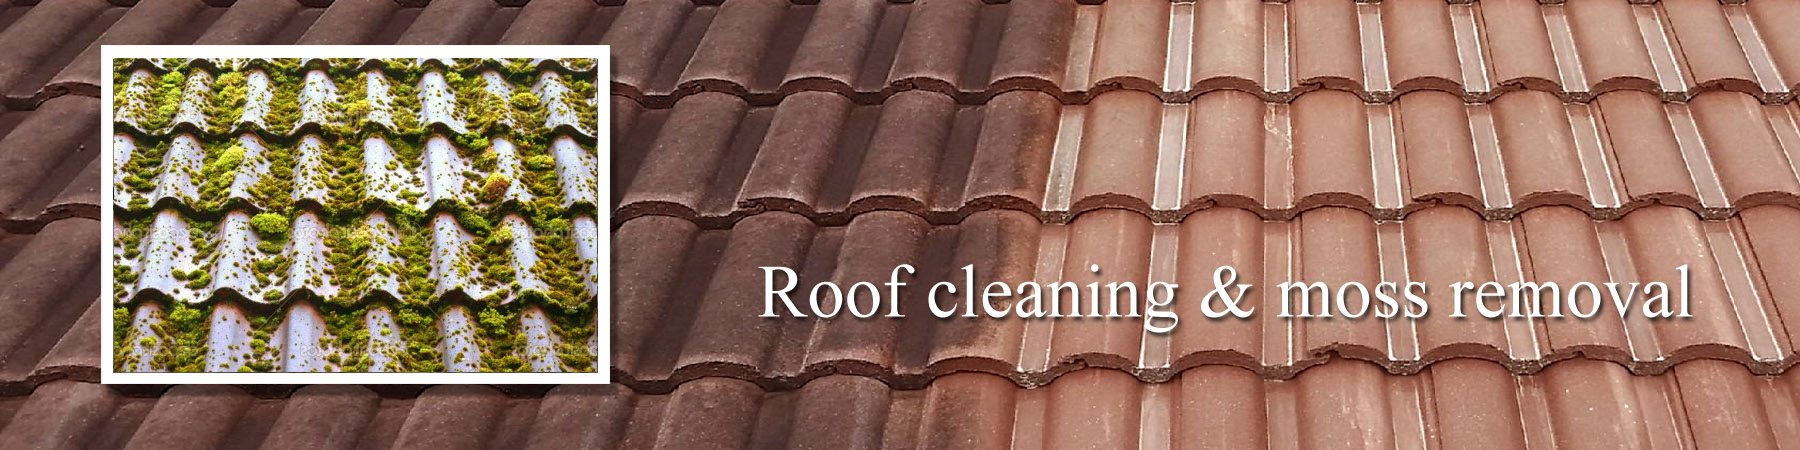 J.R. Roof Cleaning Strood roof moss removal repairs & coating J R Cleaning